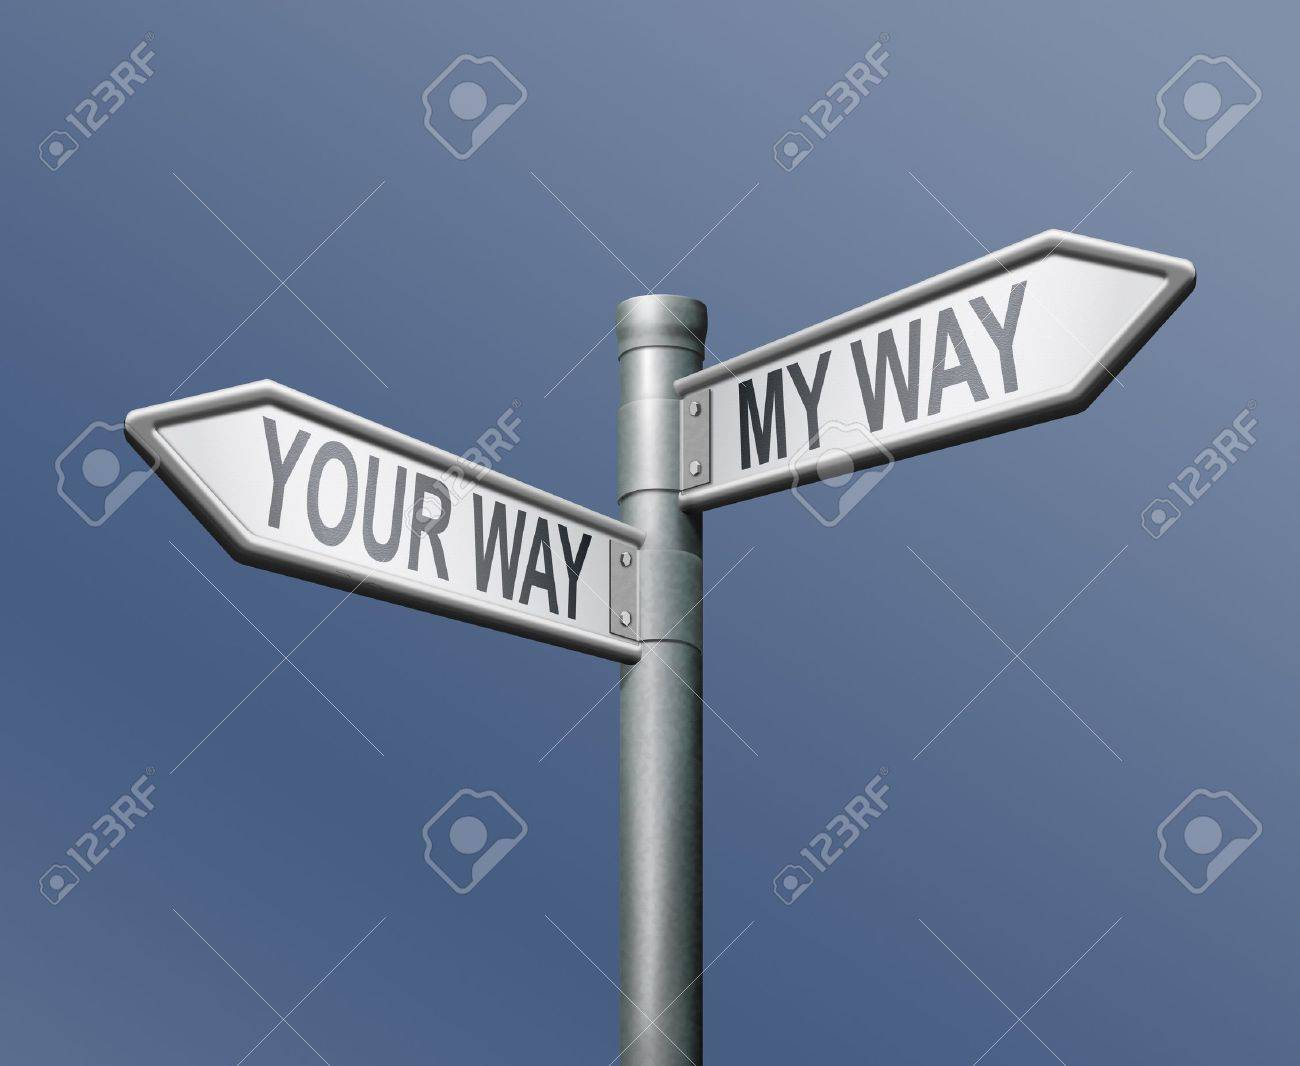 your way my way road sign on blue background Stock Photo - 8363716